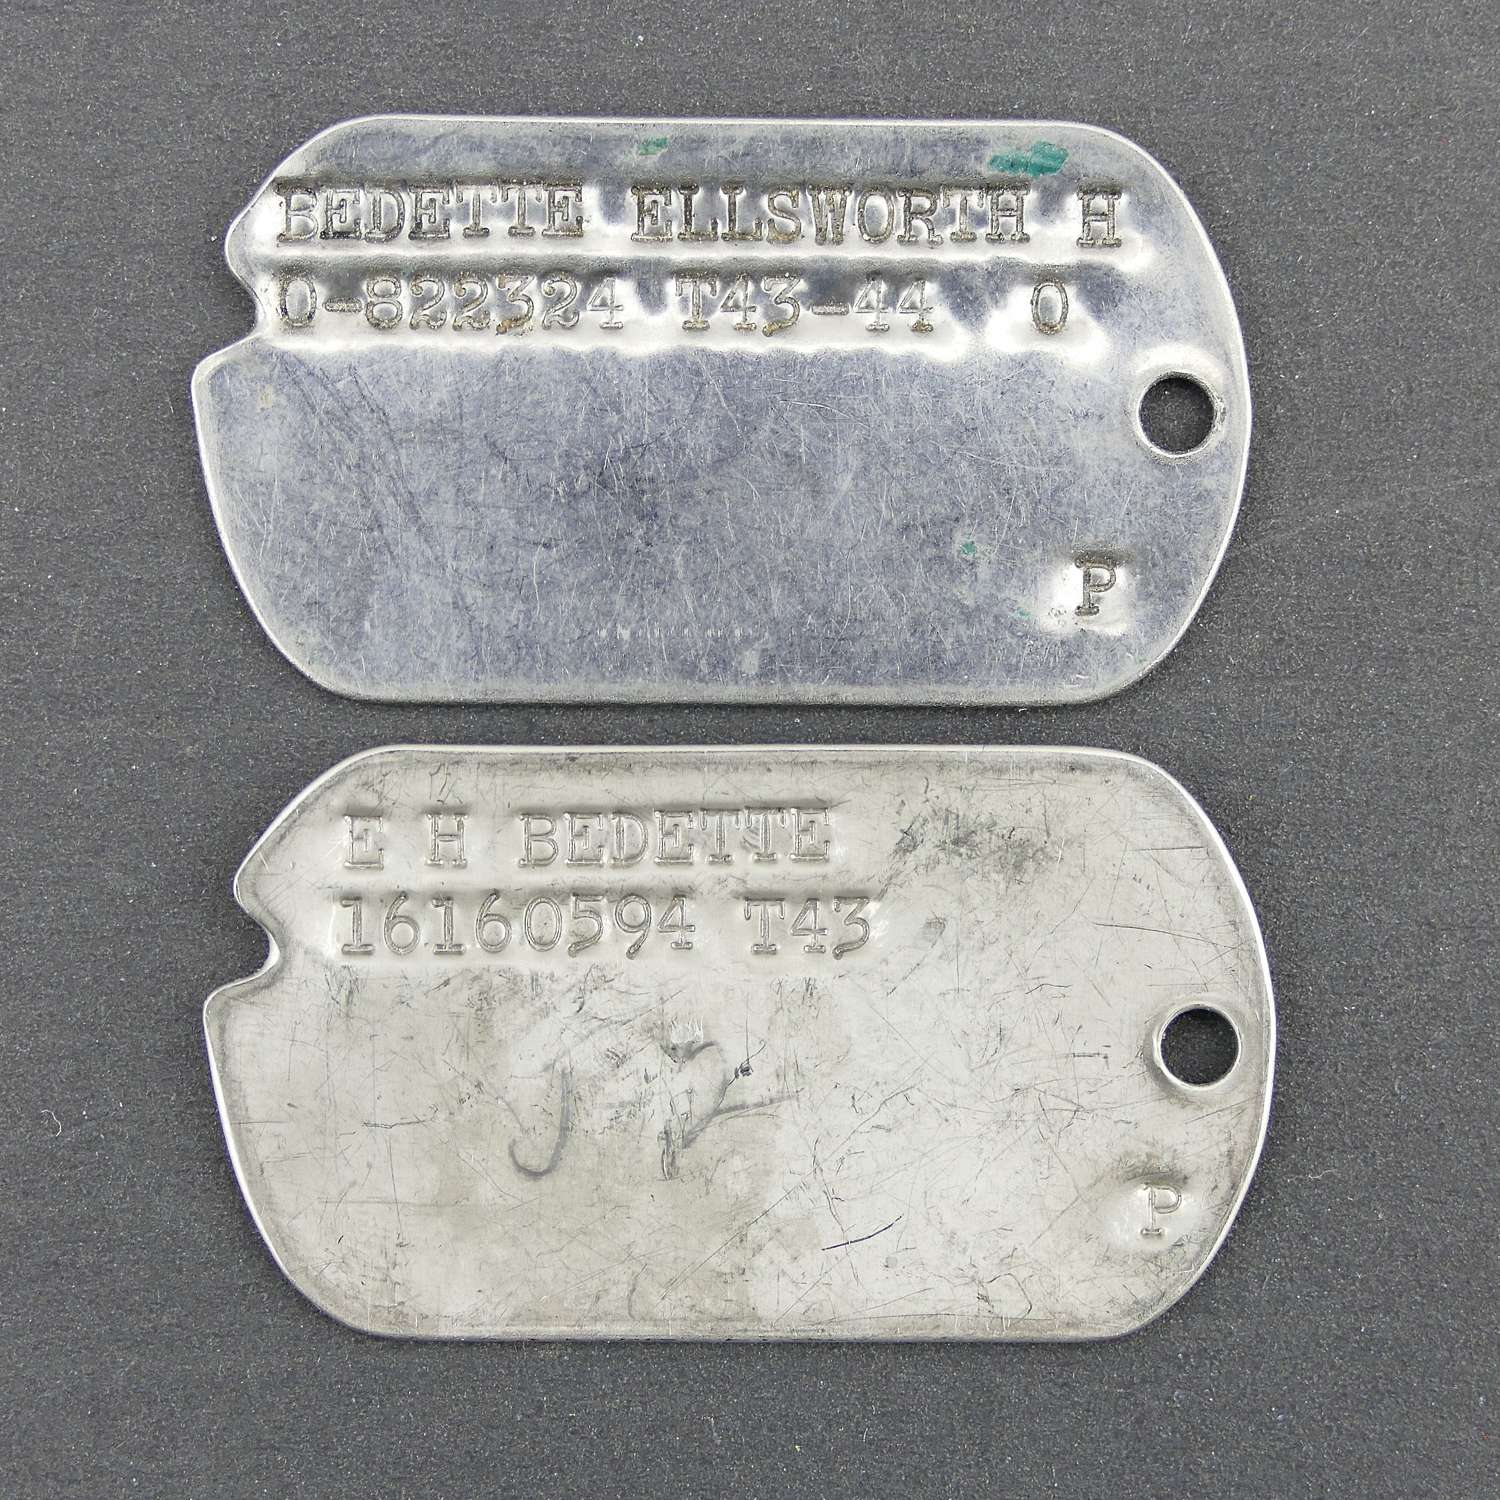 USAAF 15TH AAF Pilot's dog tags